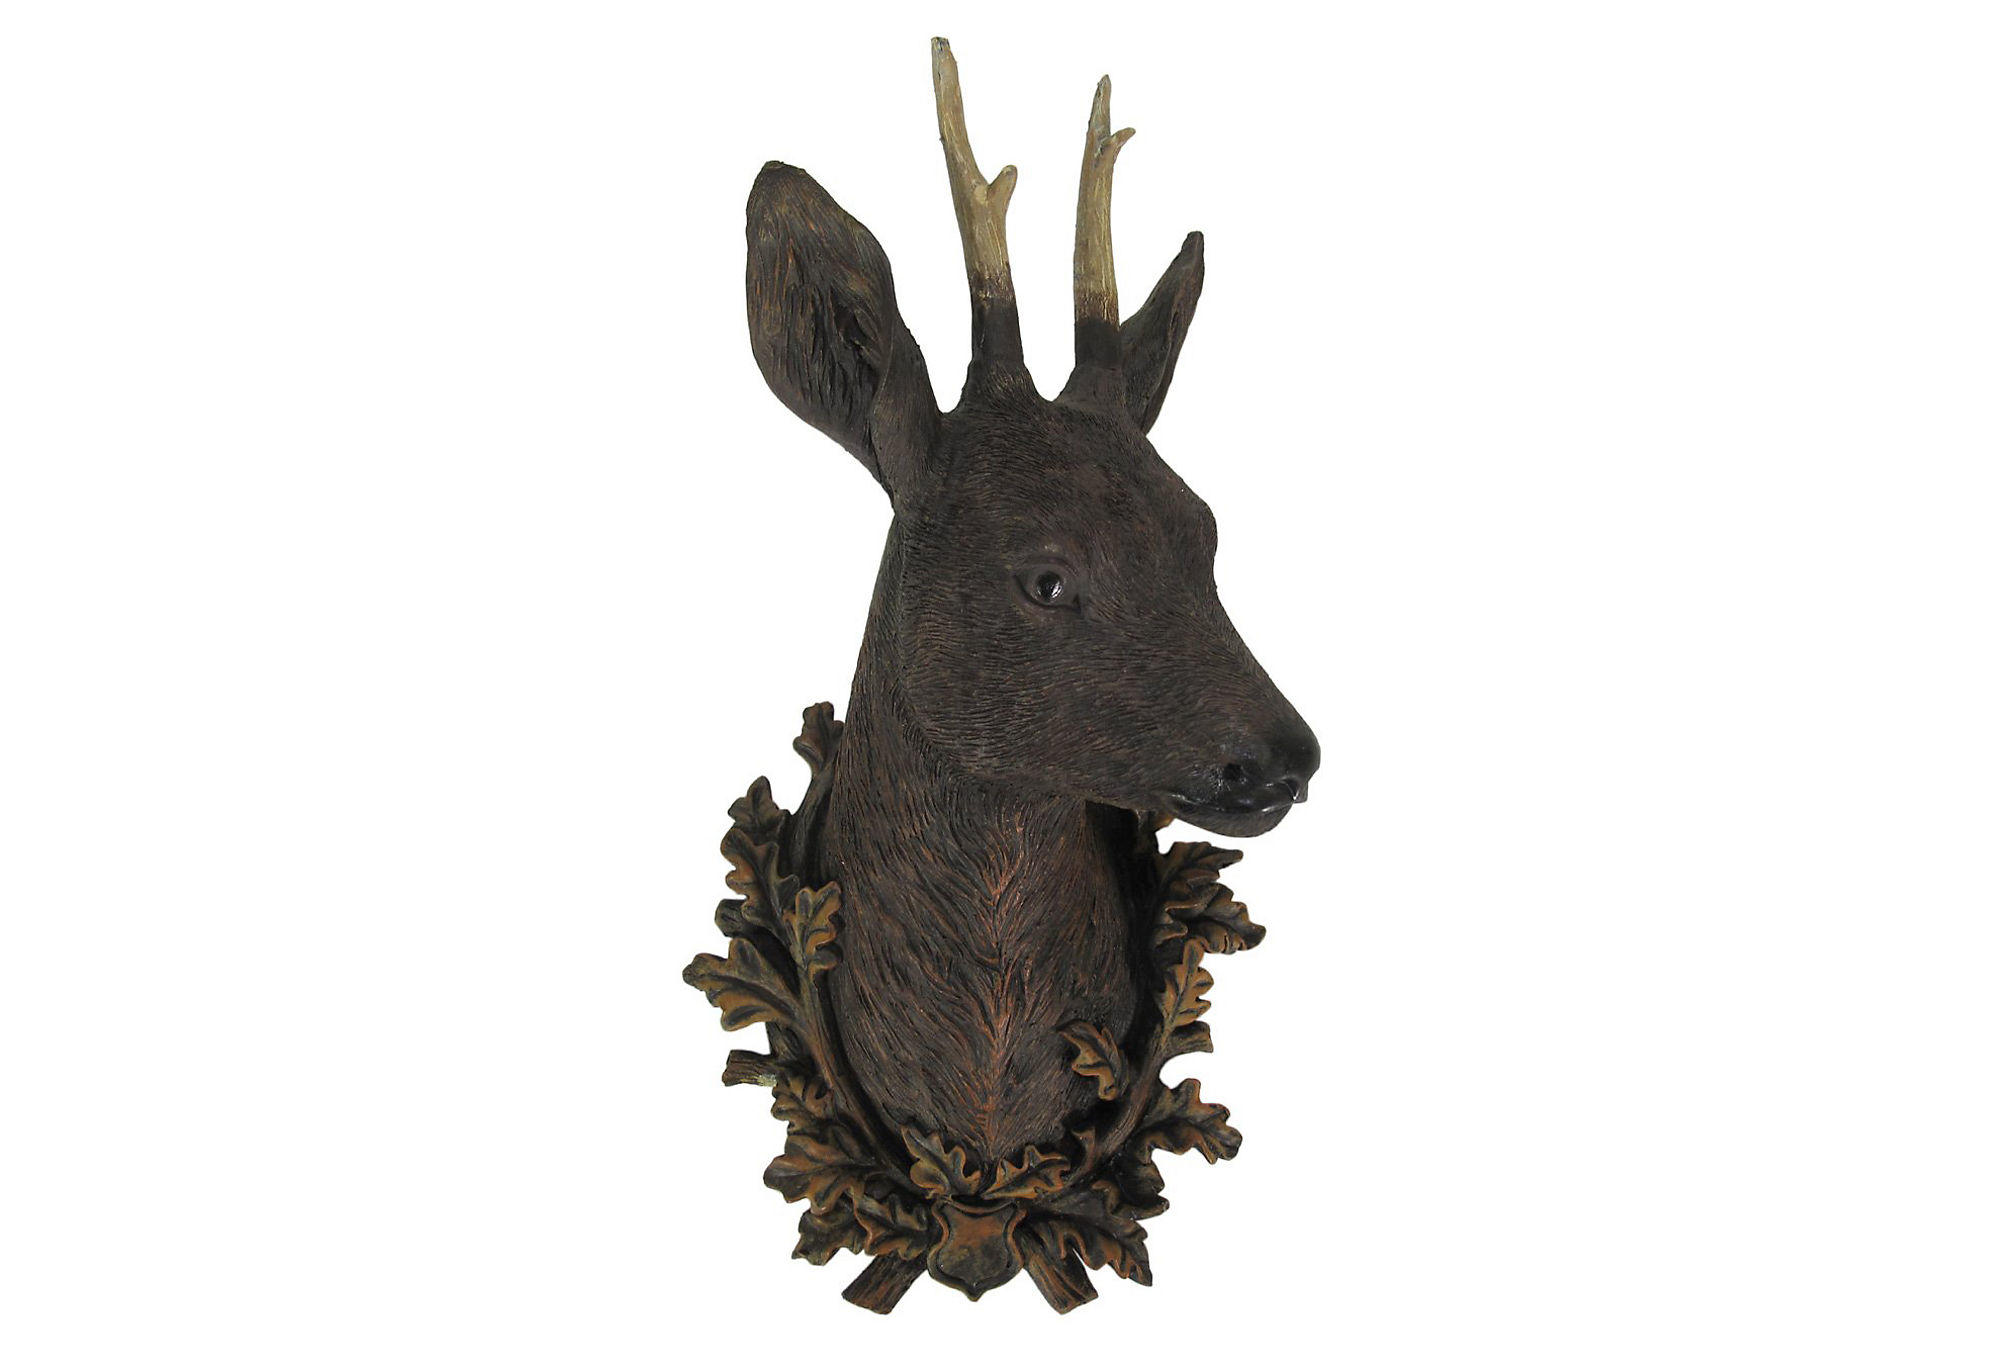 Faux Stag Head Faux Deer Head Wall Decor Natural From One Kings Lane Home